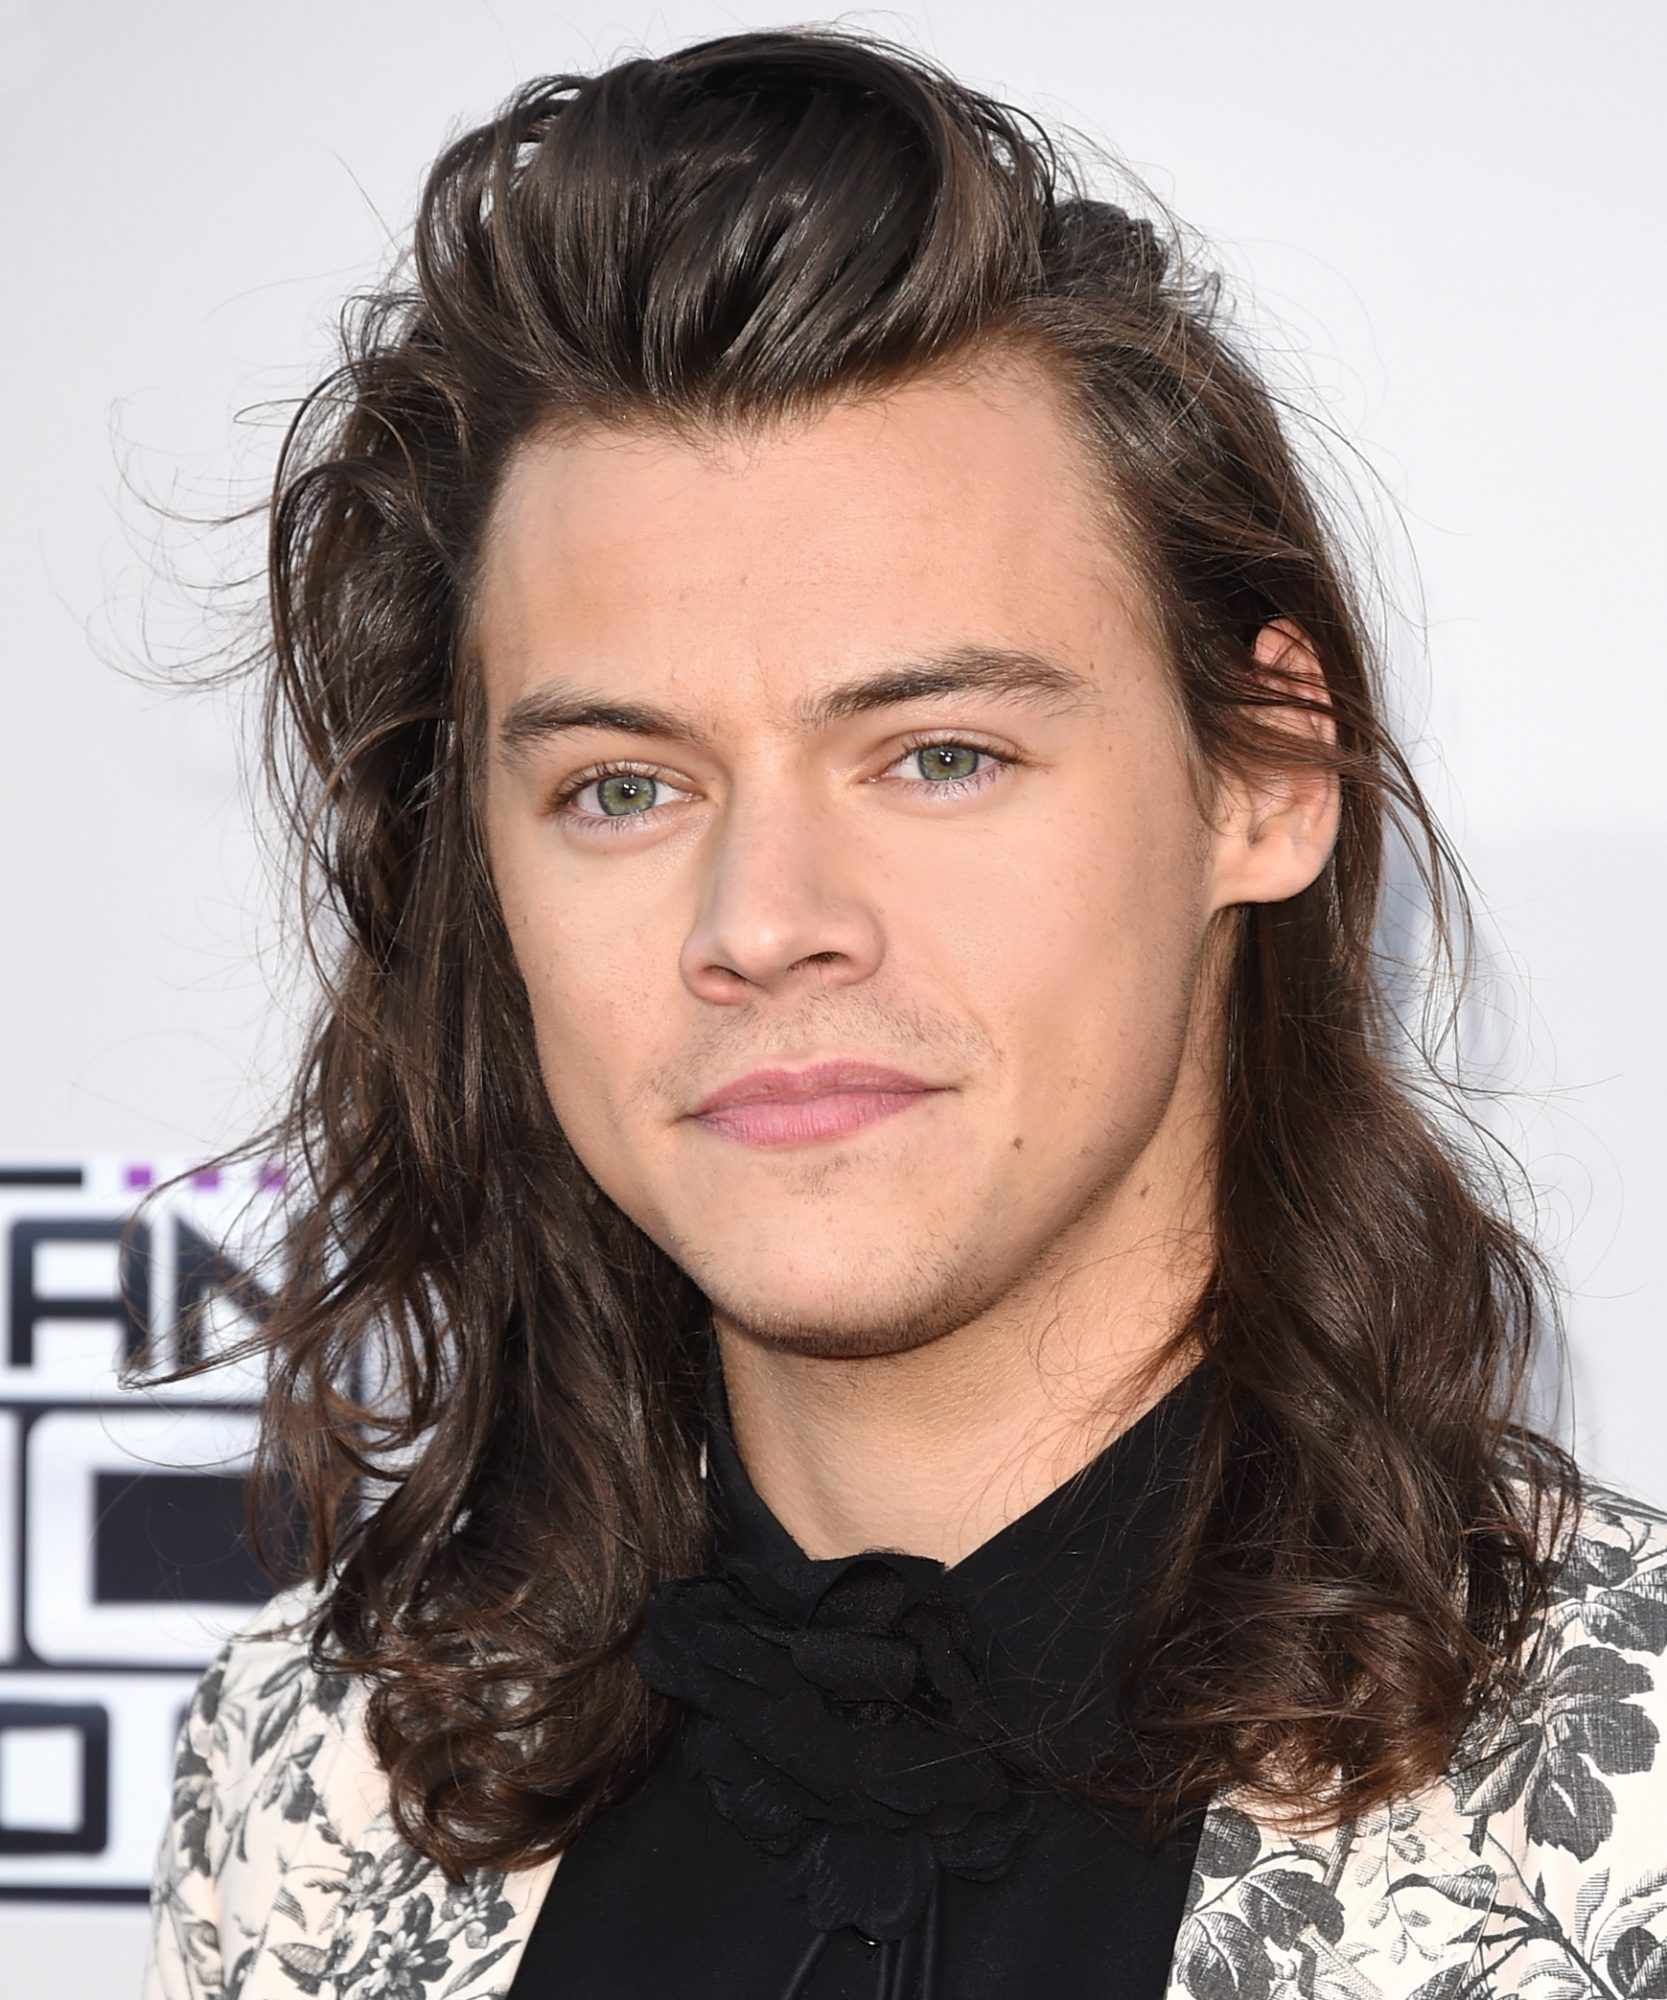 Harry Styles Wears Black Nail Polish and Now We're All Getting Manis, Too